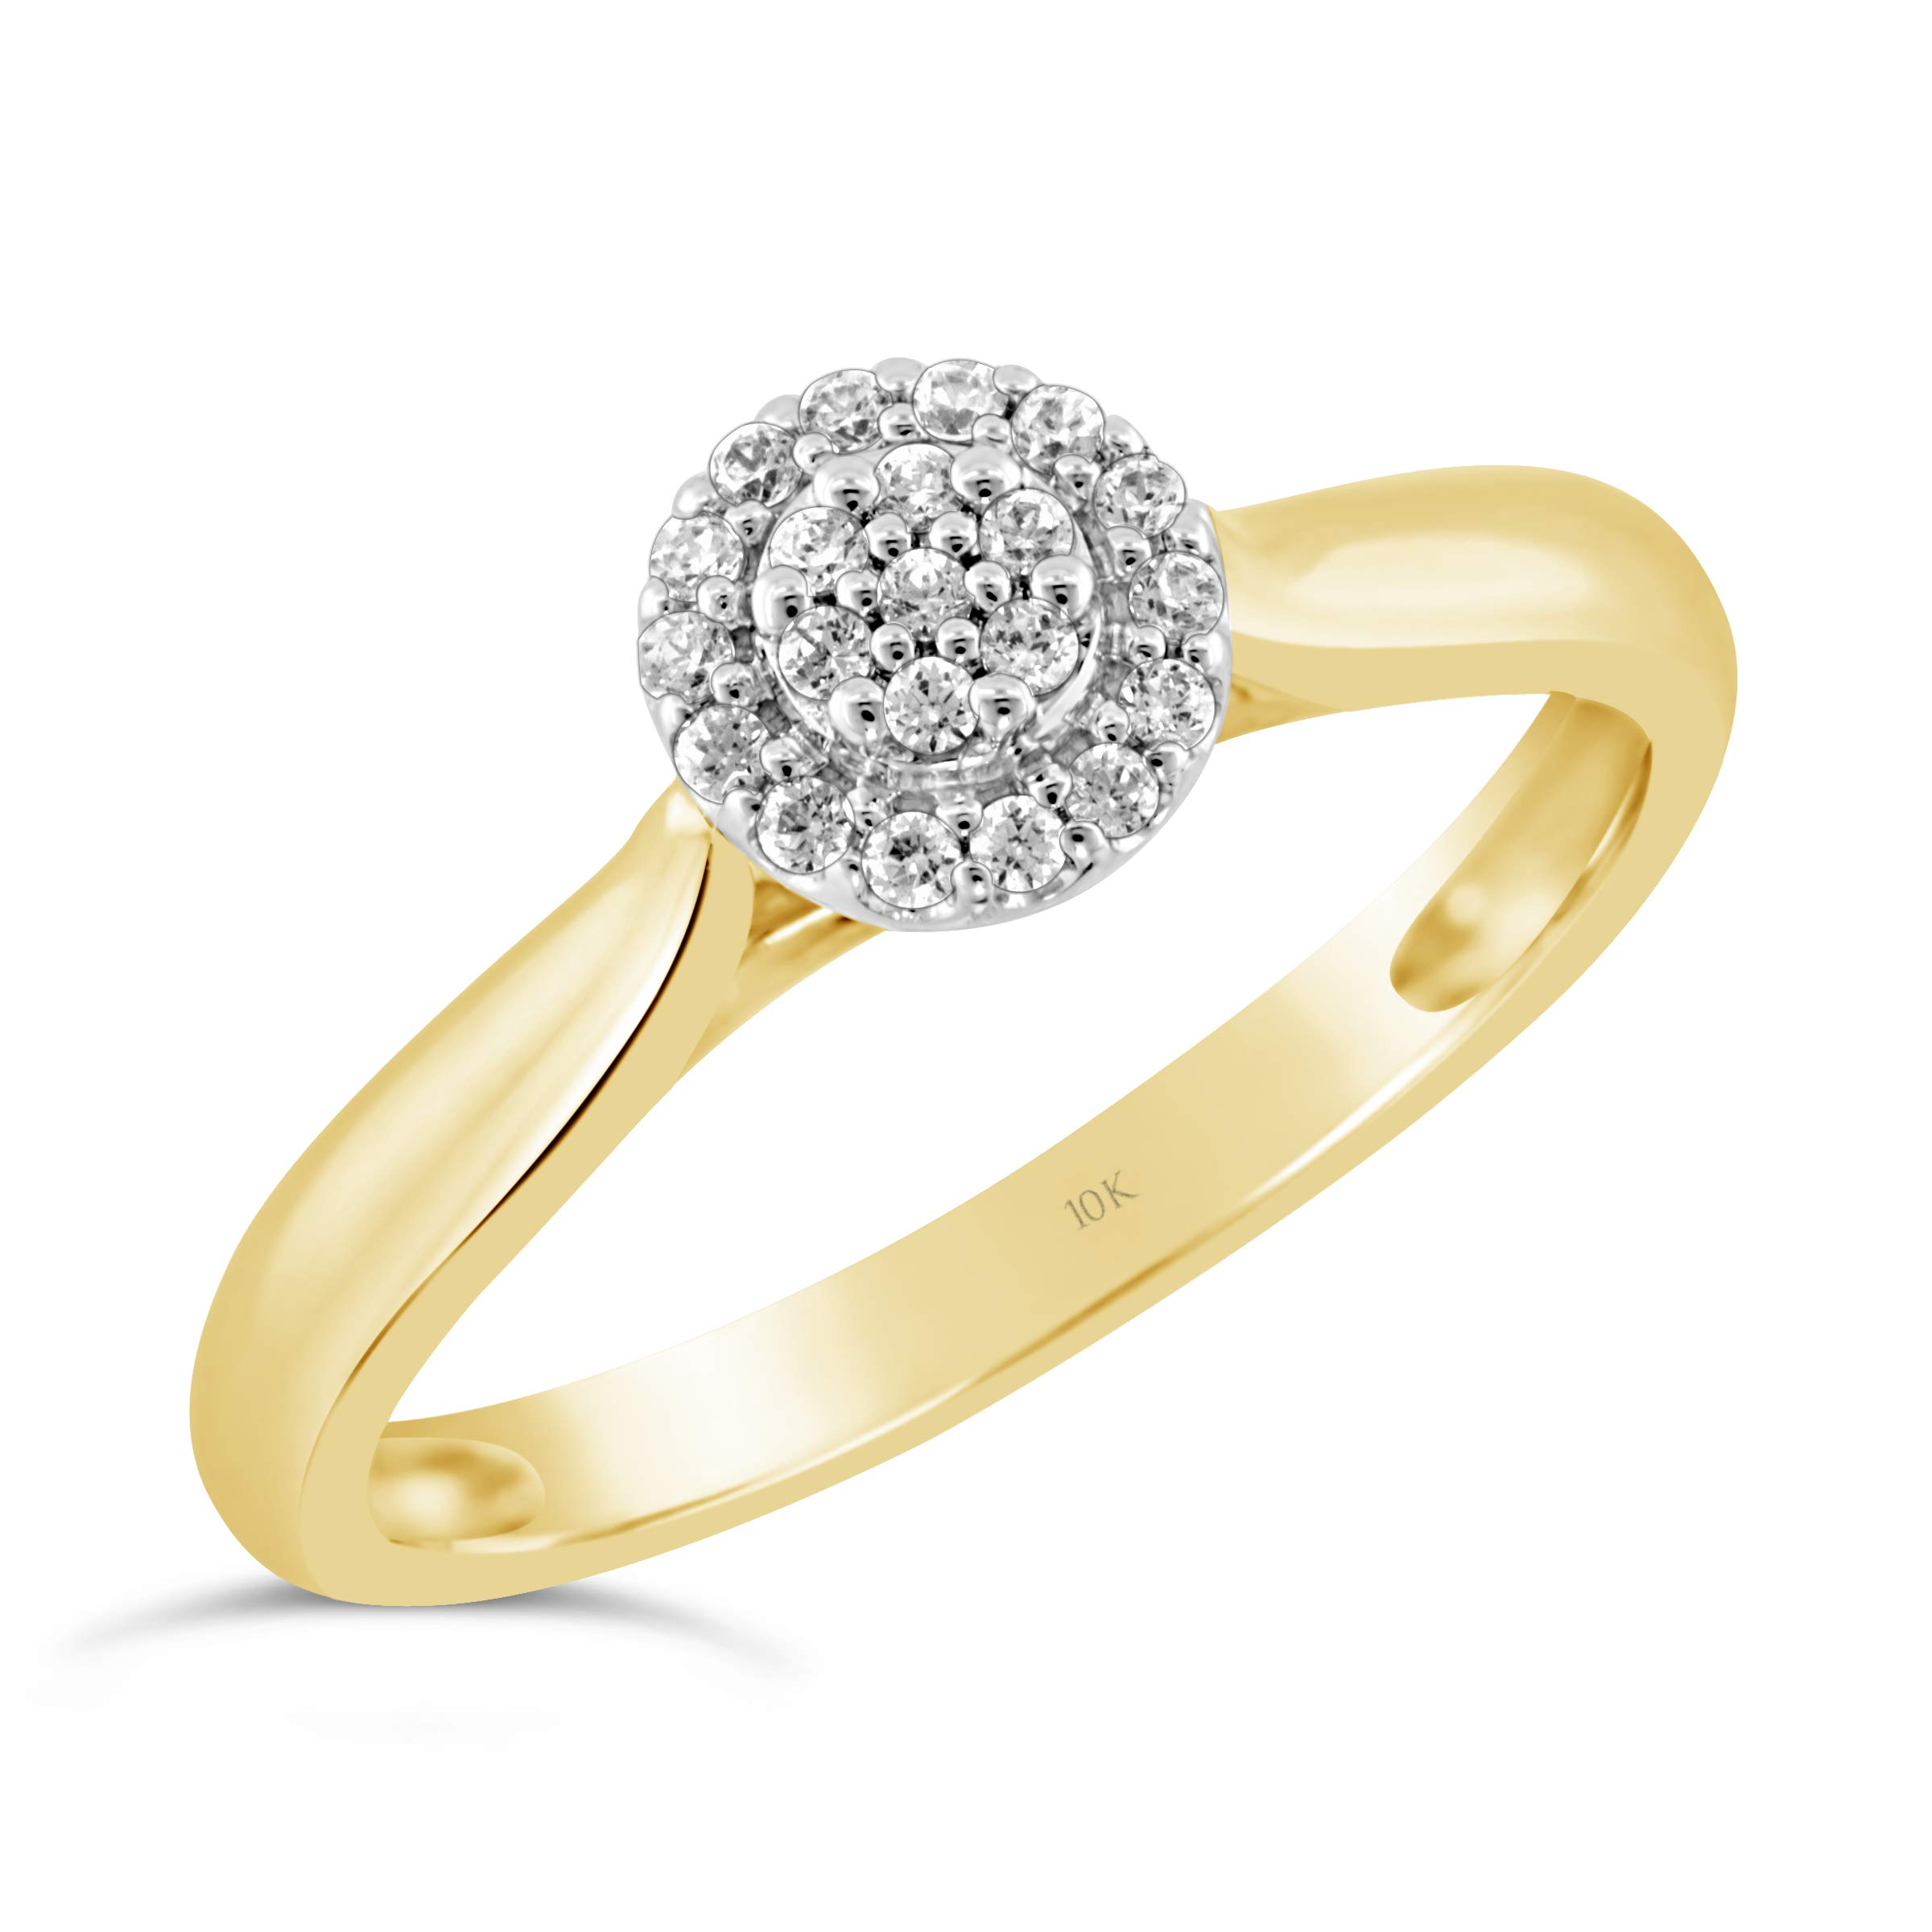 Brilliant Expressions 10K Yellow and White Gold 1/10 Cttw Conflict Free Diamond Round Halo Cluster Engagement Ring (I-J Color, I2-I3 Clarity), Size 7